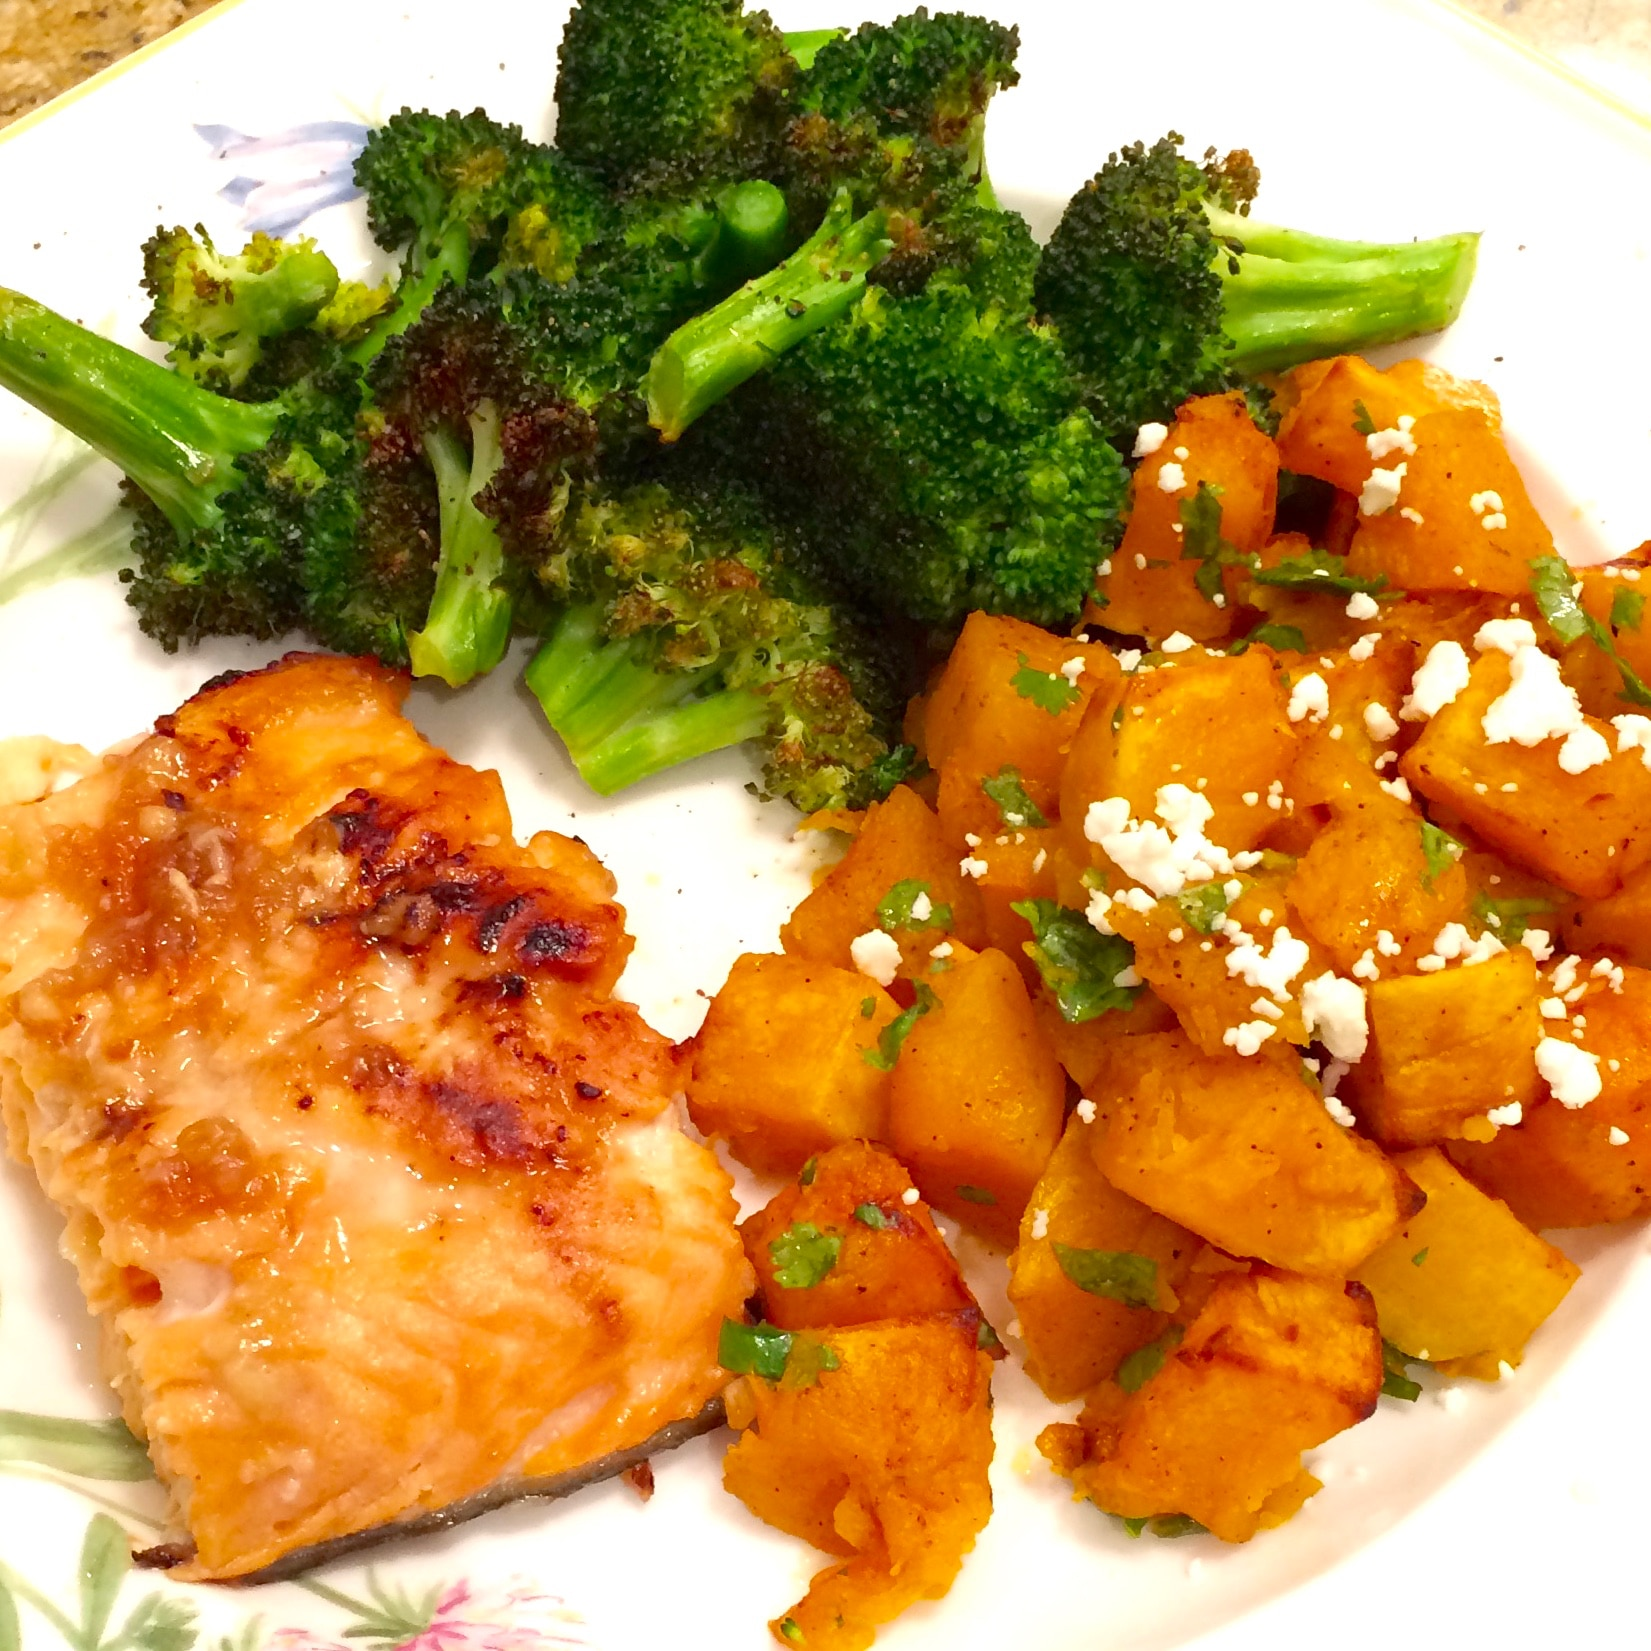 miso salmon with chili-lime roasted butternut squash